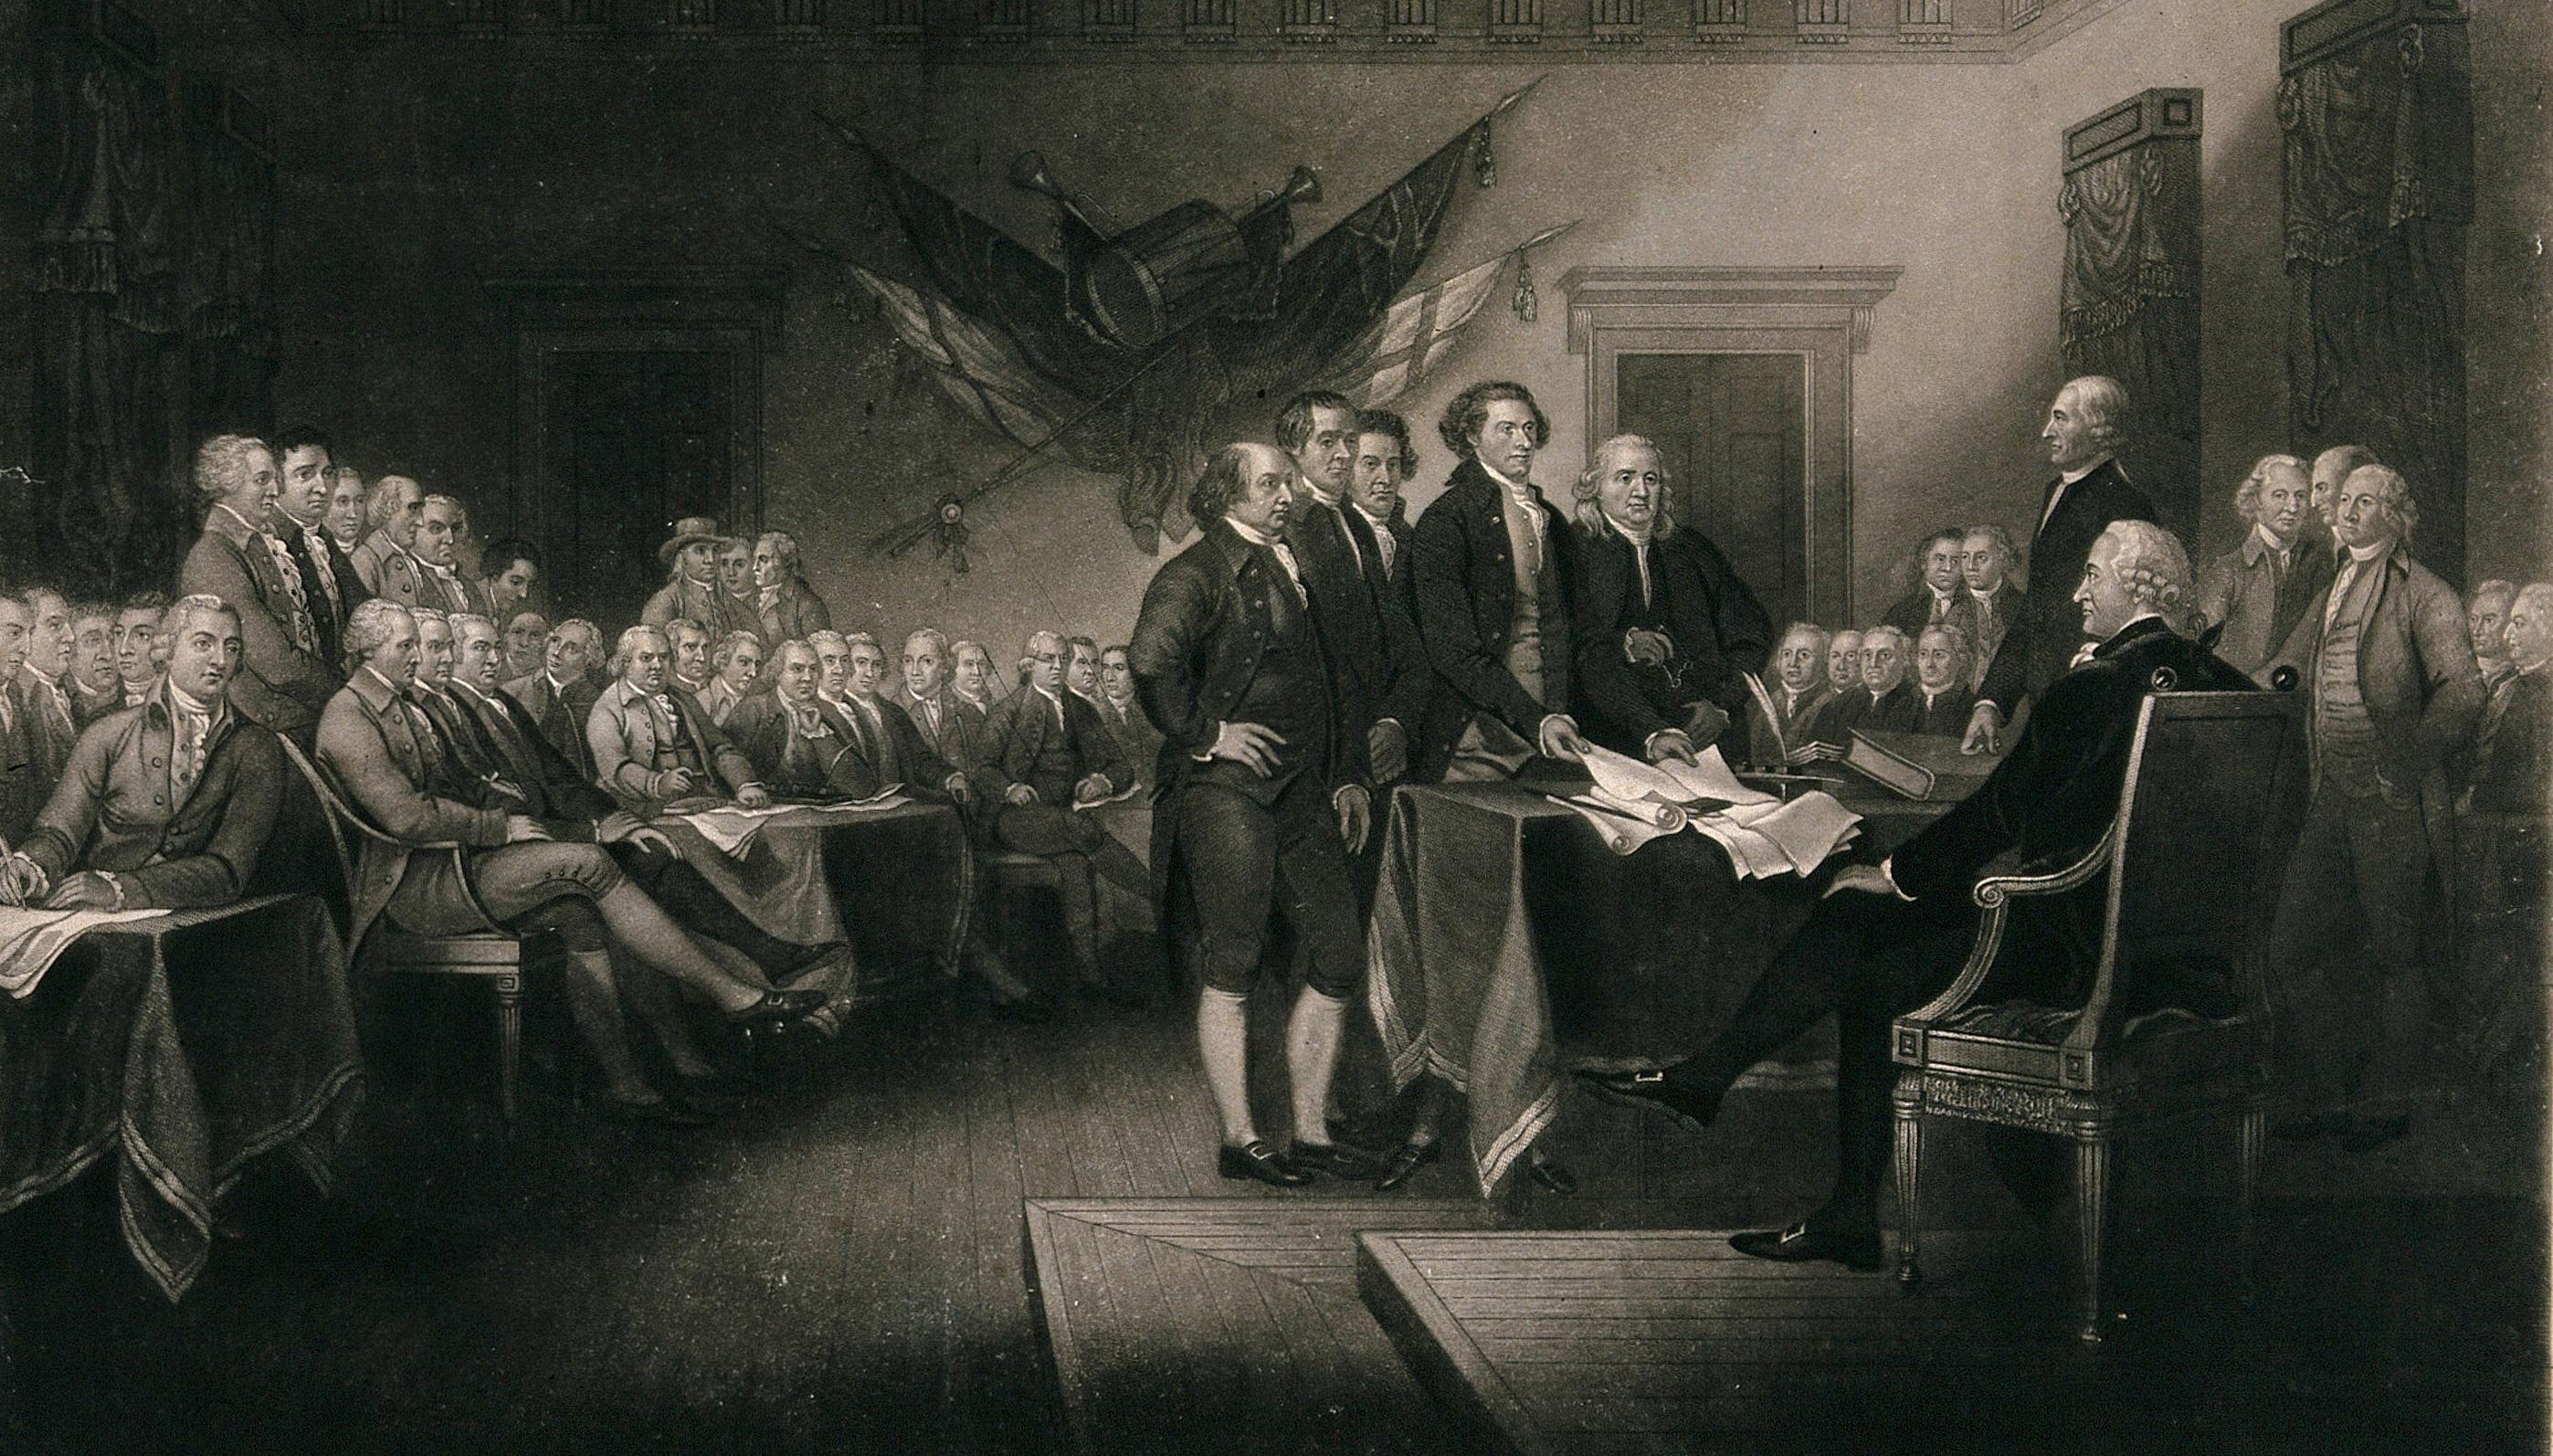 The image is taken from a famous depiction by after J. Trumbull and shows early colonial leaders gathered around the document in Philadelphia.